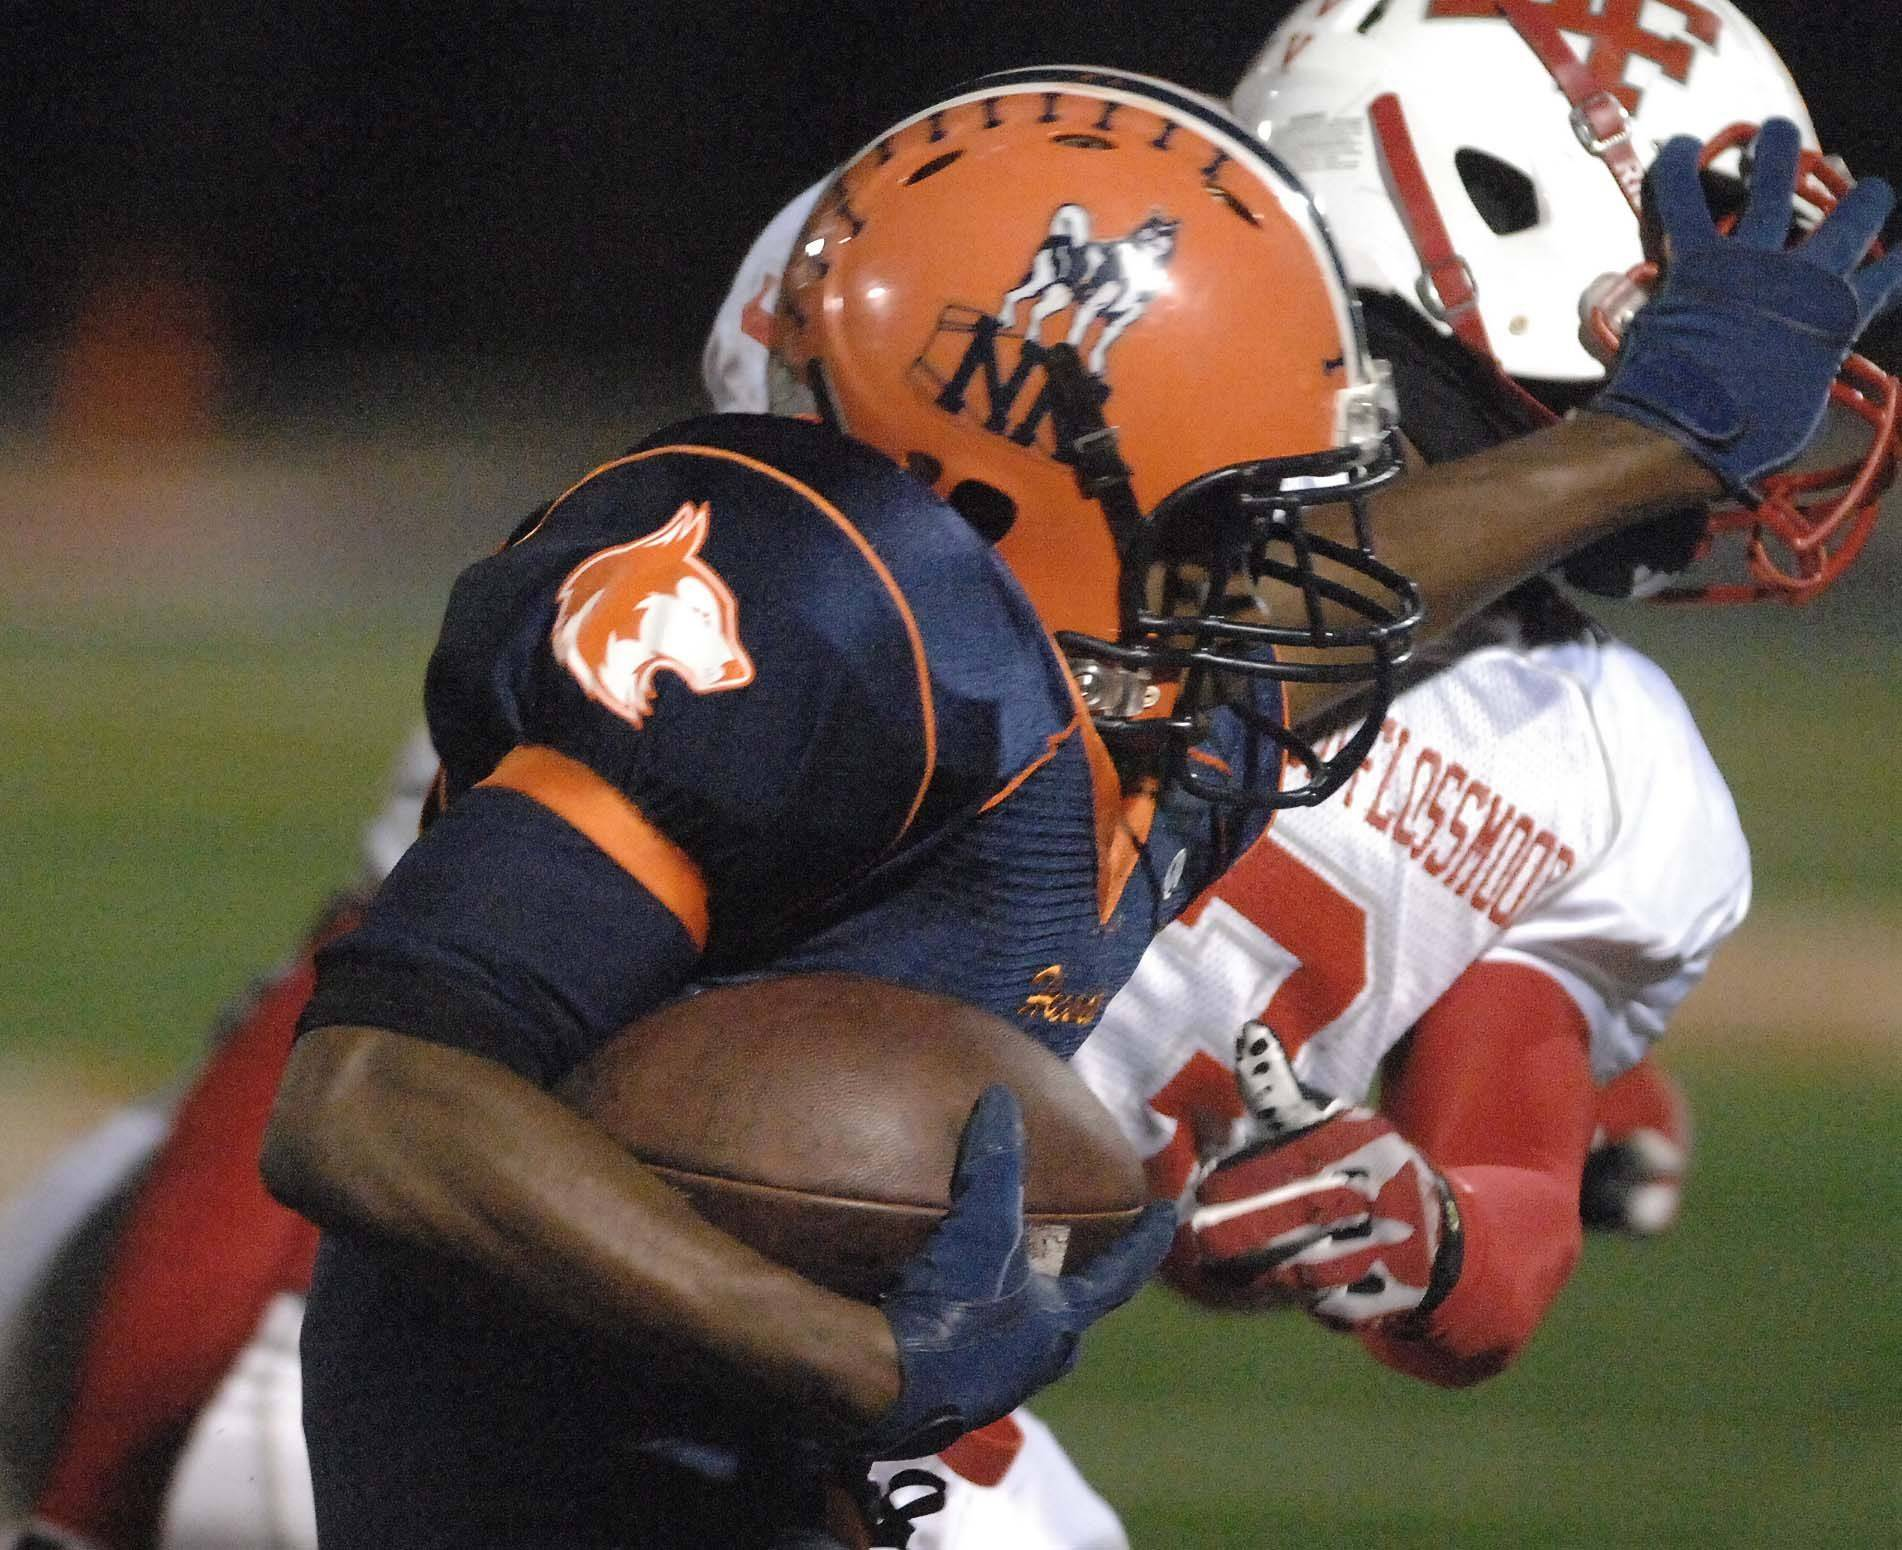 Tarrell Tucker of Homewood-Flossmoor, back, is pushed out of the way by Antonio Owens of Naperville North Friday.